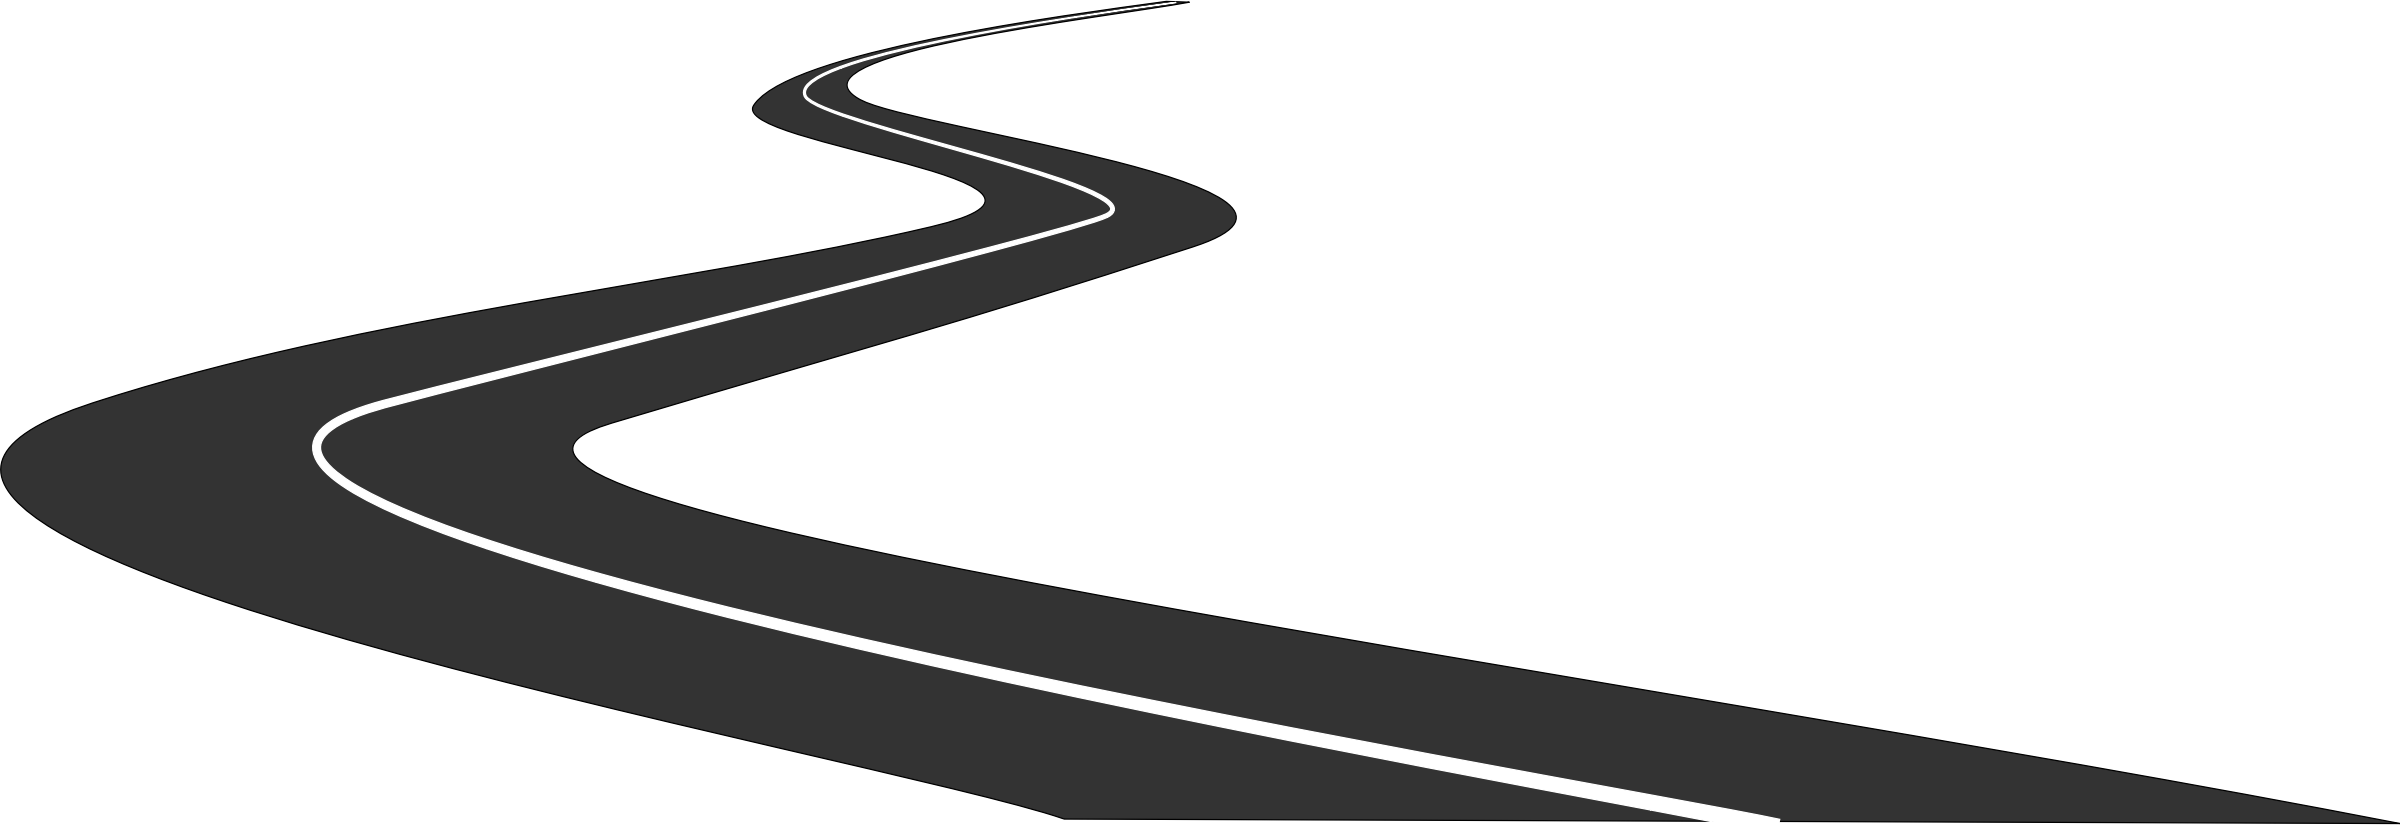 svg black and white download Straight Road Png